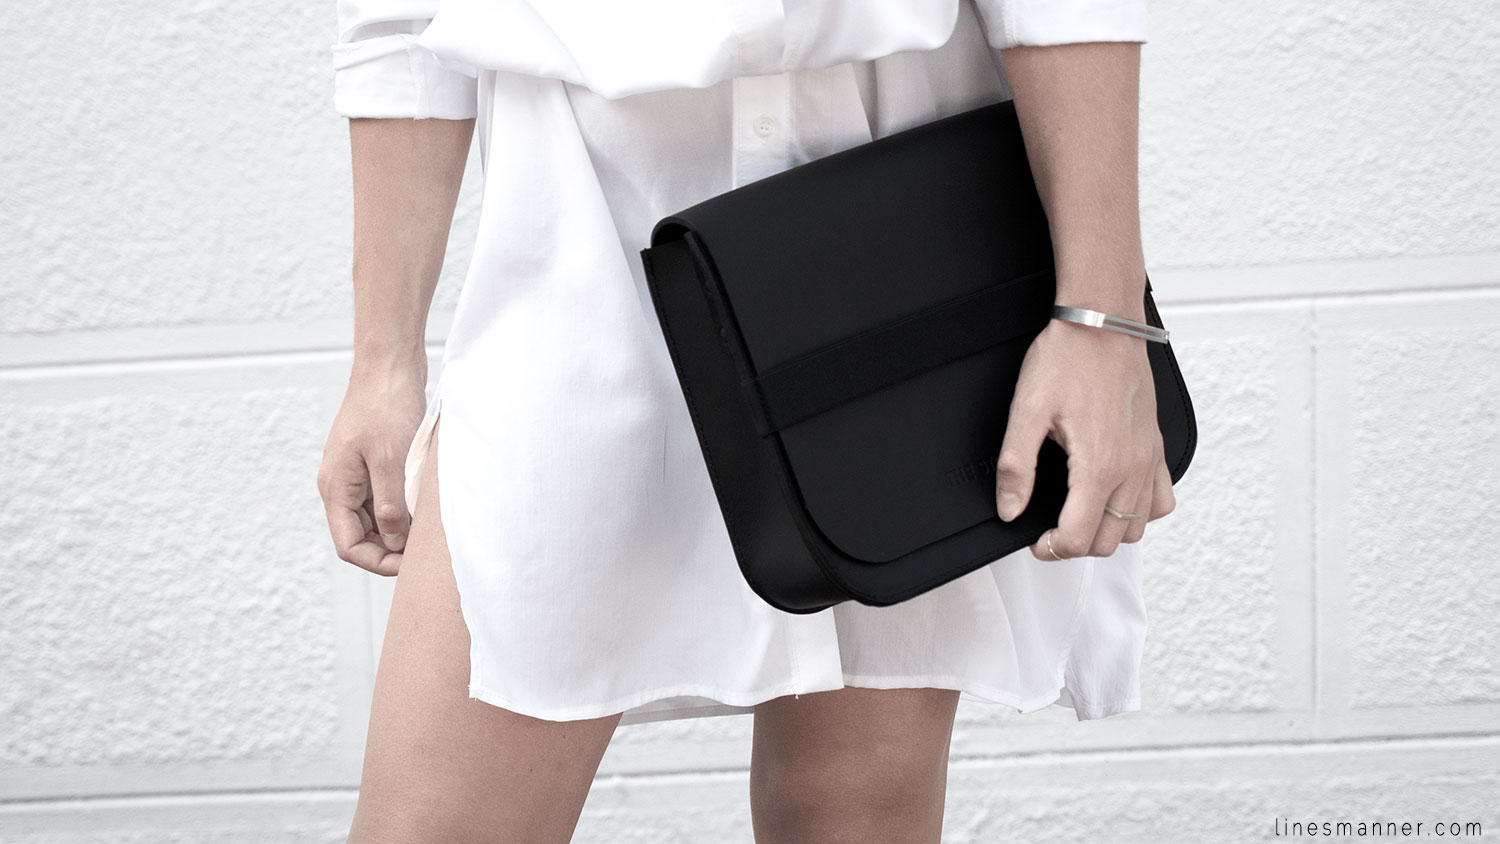 Lines-Manner-Whiteout-Fashion-Minimal-Clean-Fresh-Brigthly-All_White-Monochrome-Immaculate-Trend-Style-Sleek-Slouchy-Details-White_Shirt-Transeasonal-Dressing-Outfit-5